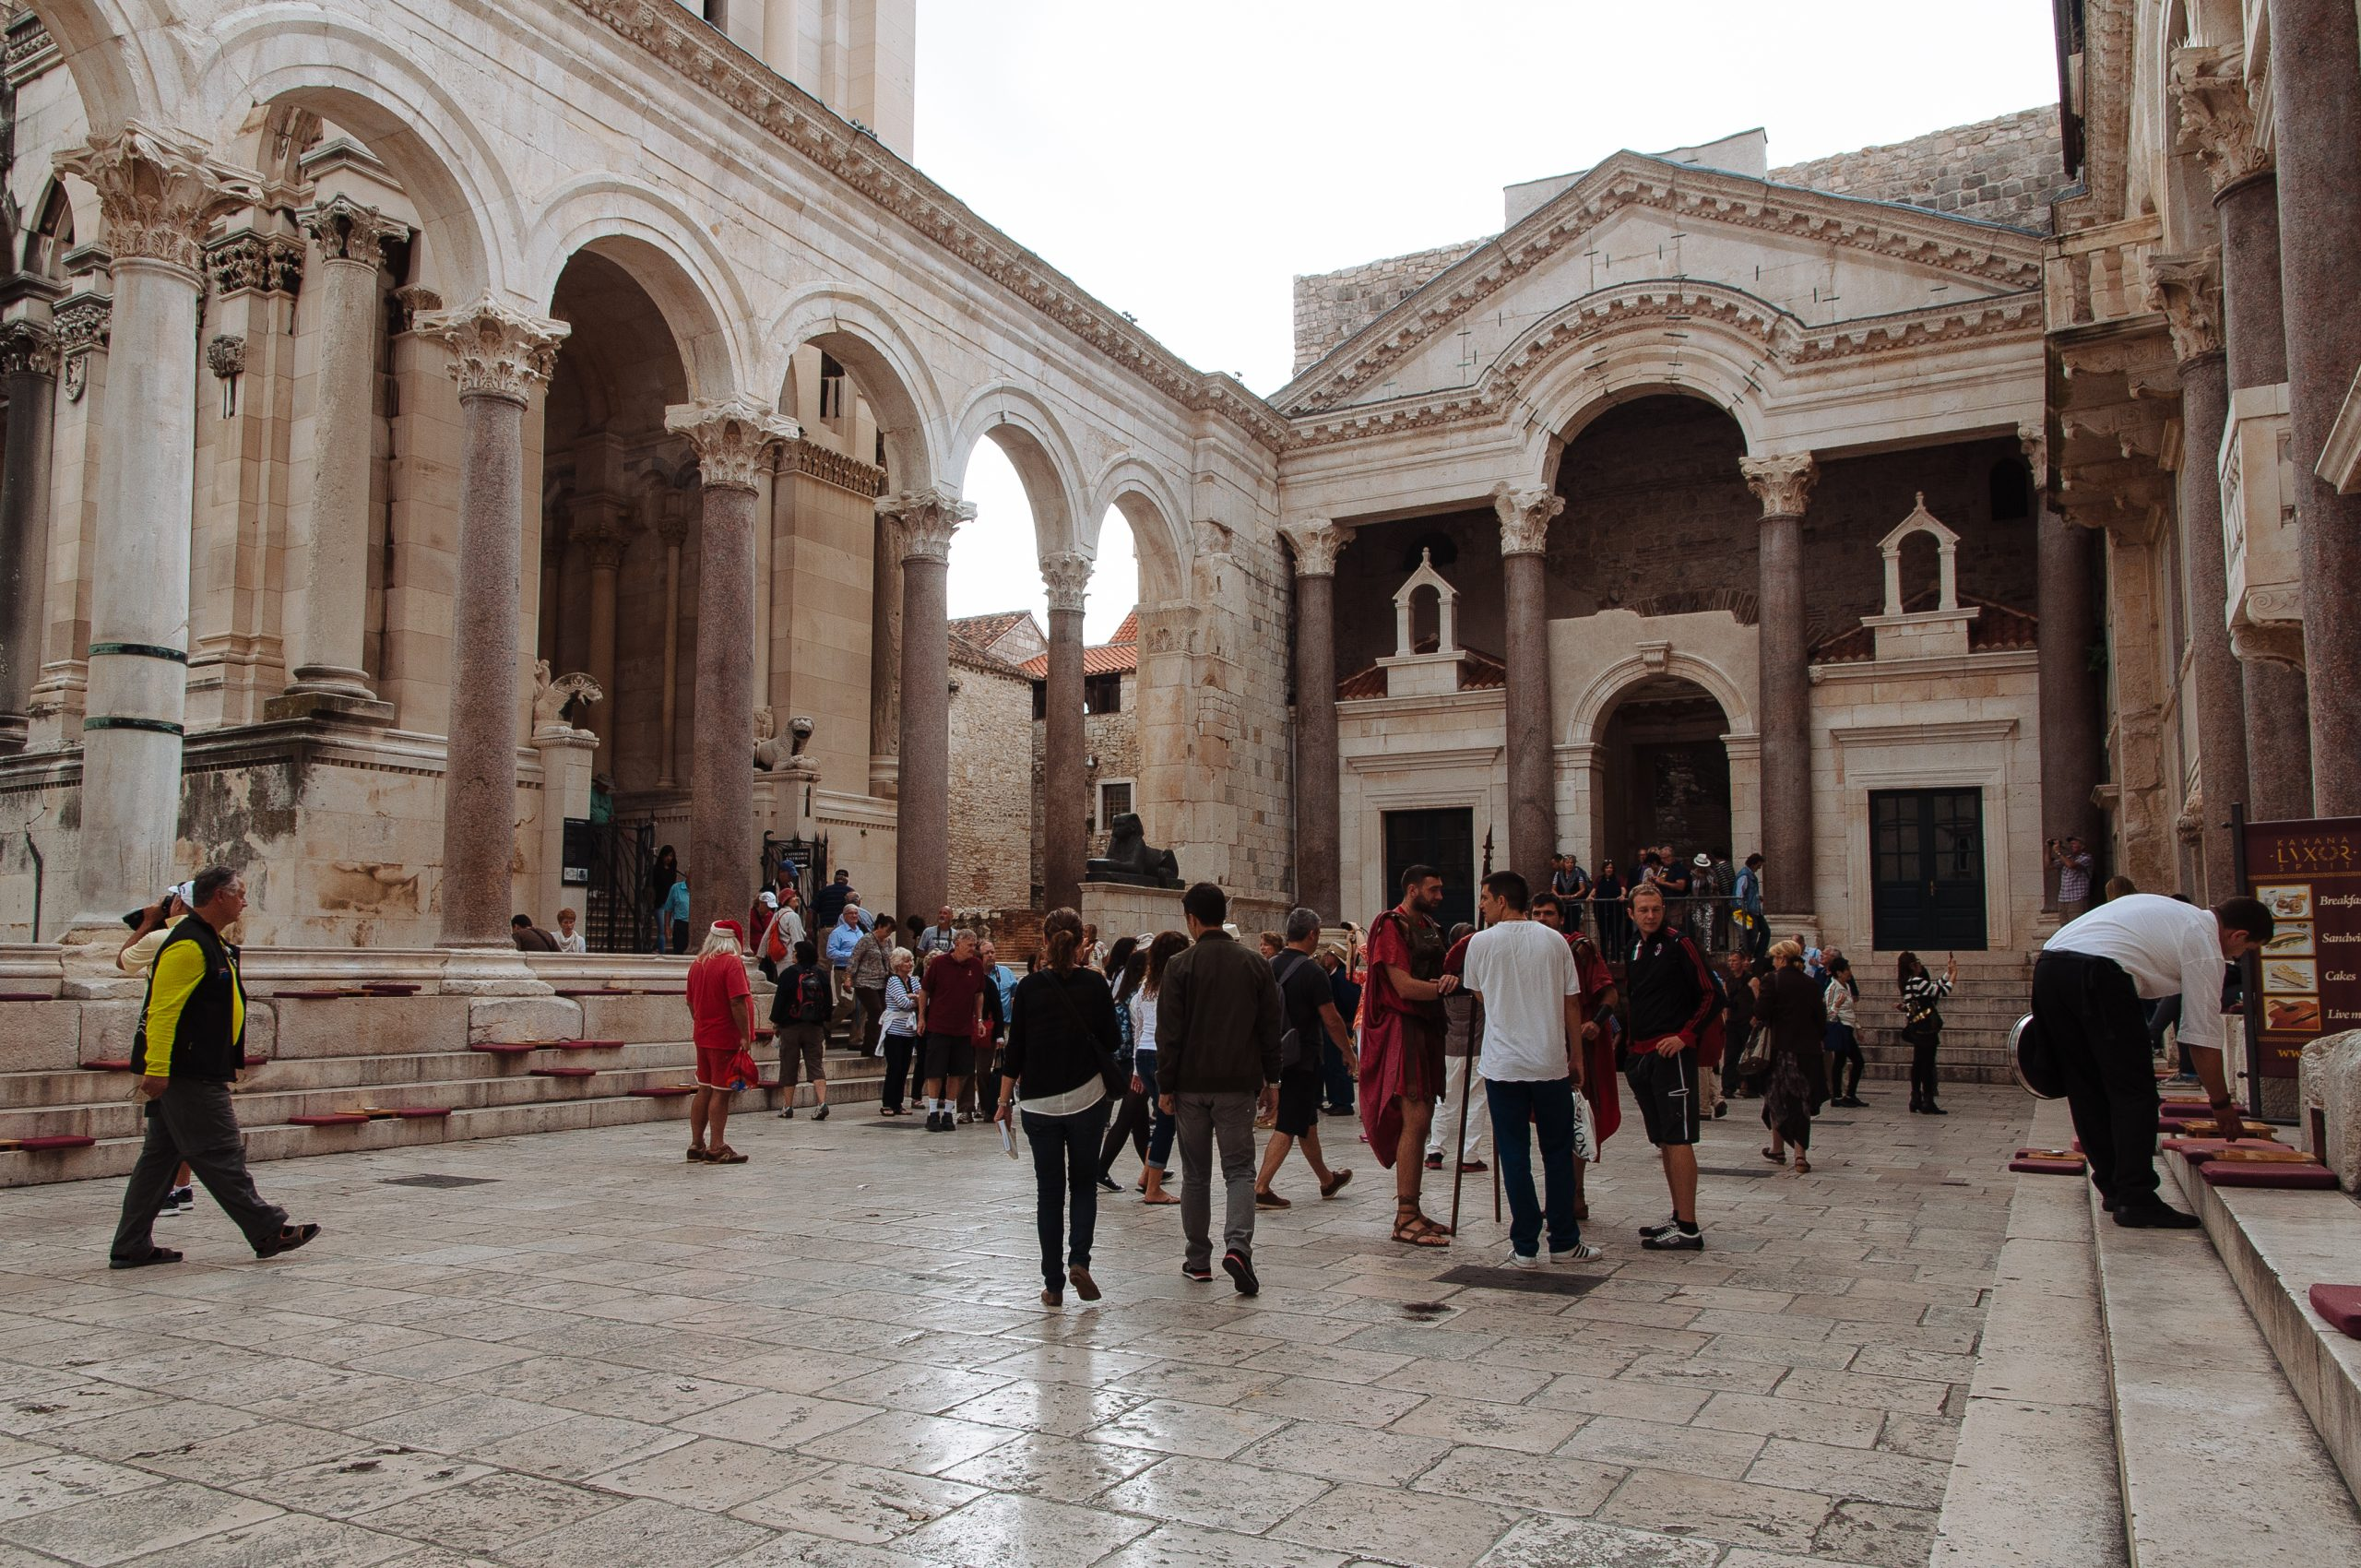 The central square in Diocletian's Palace